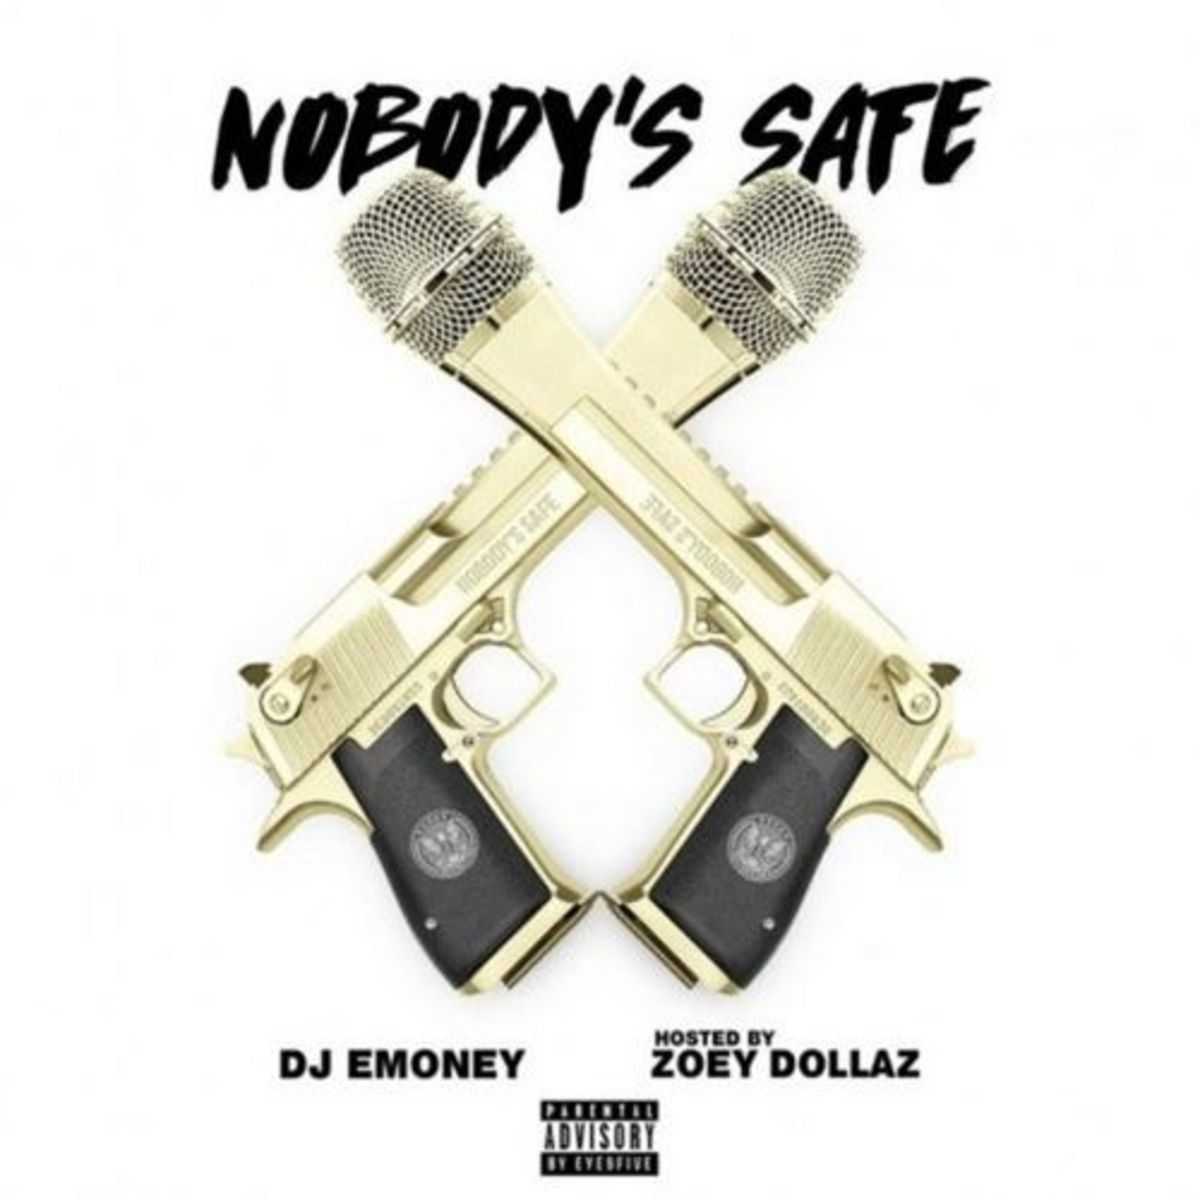 zoey-dollaz-nobodys-safe.jpg